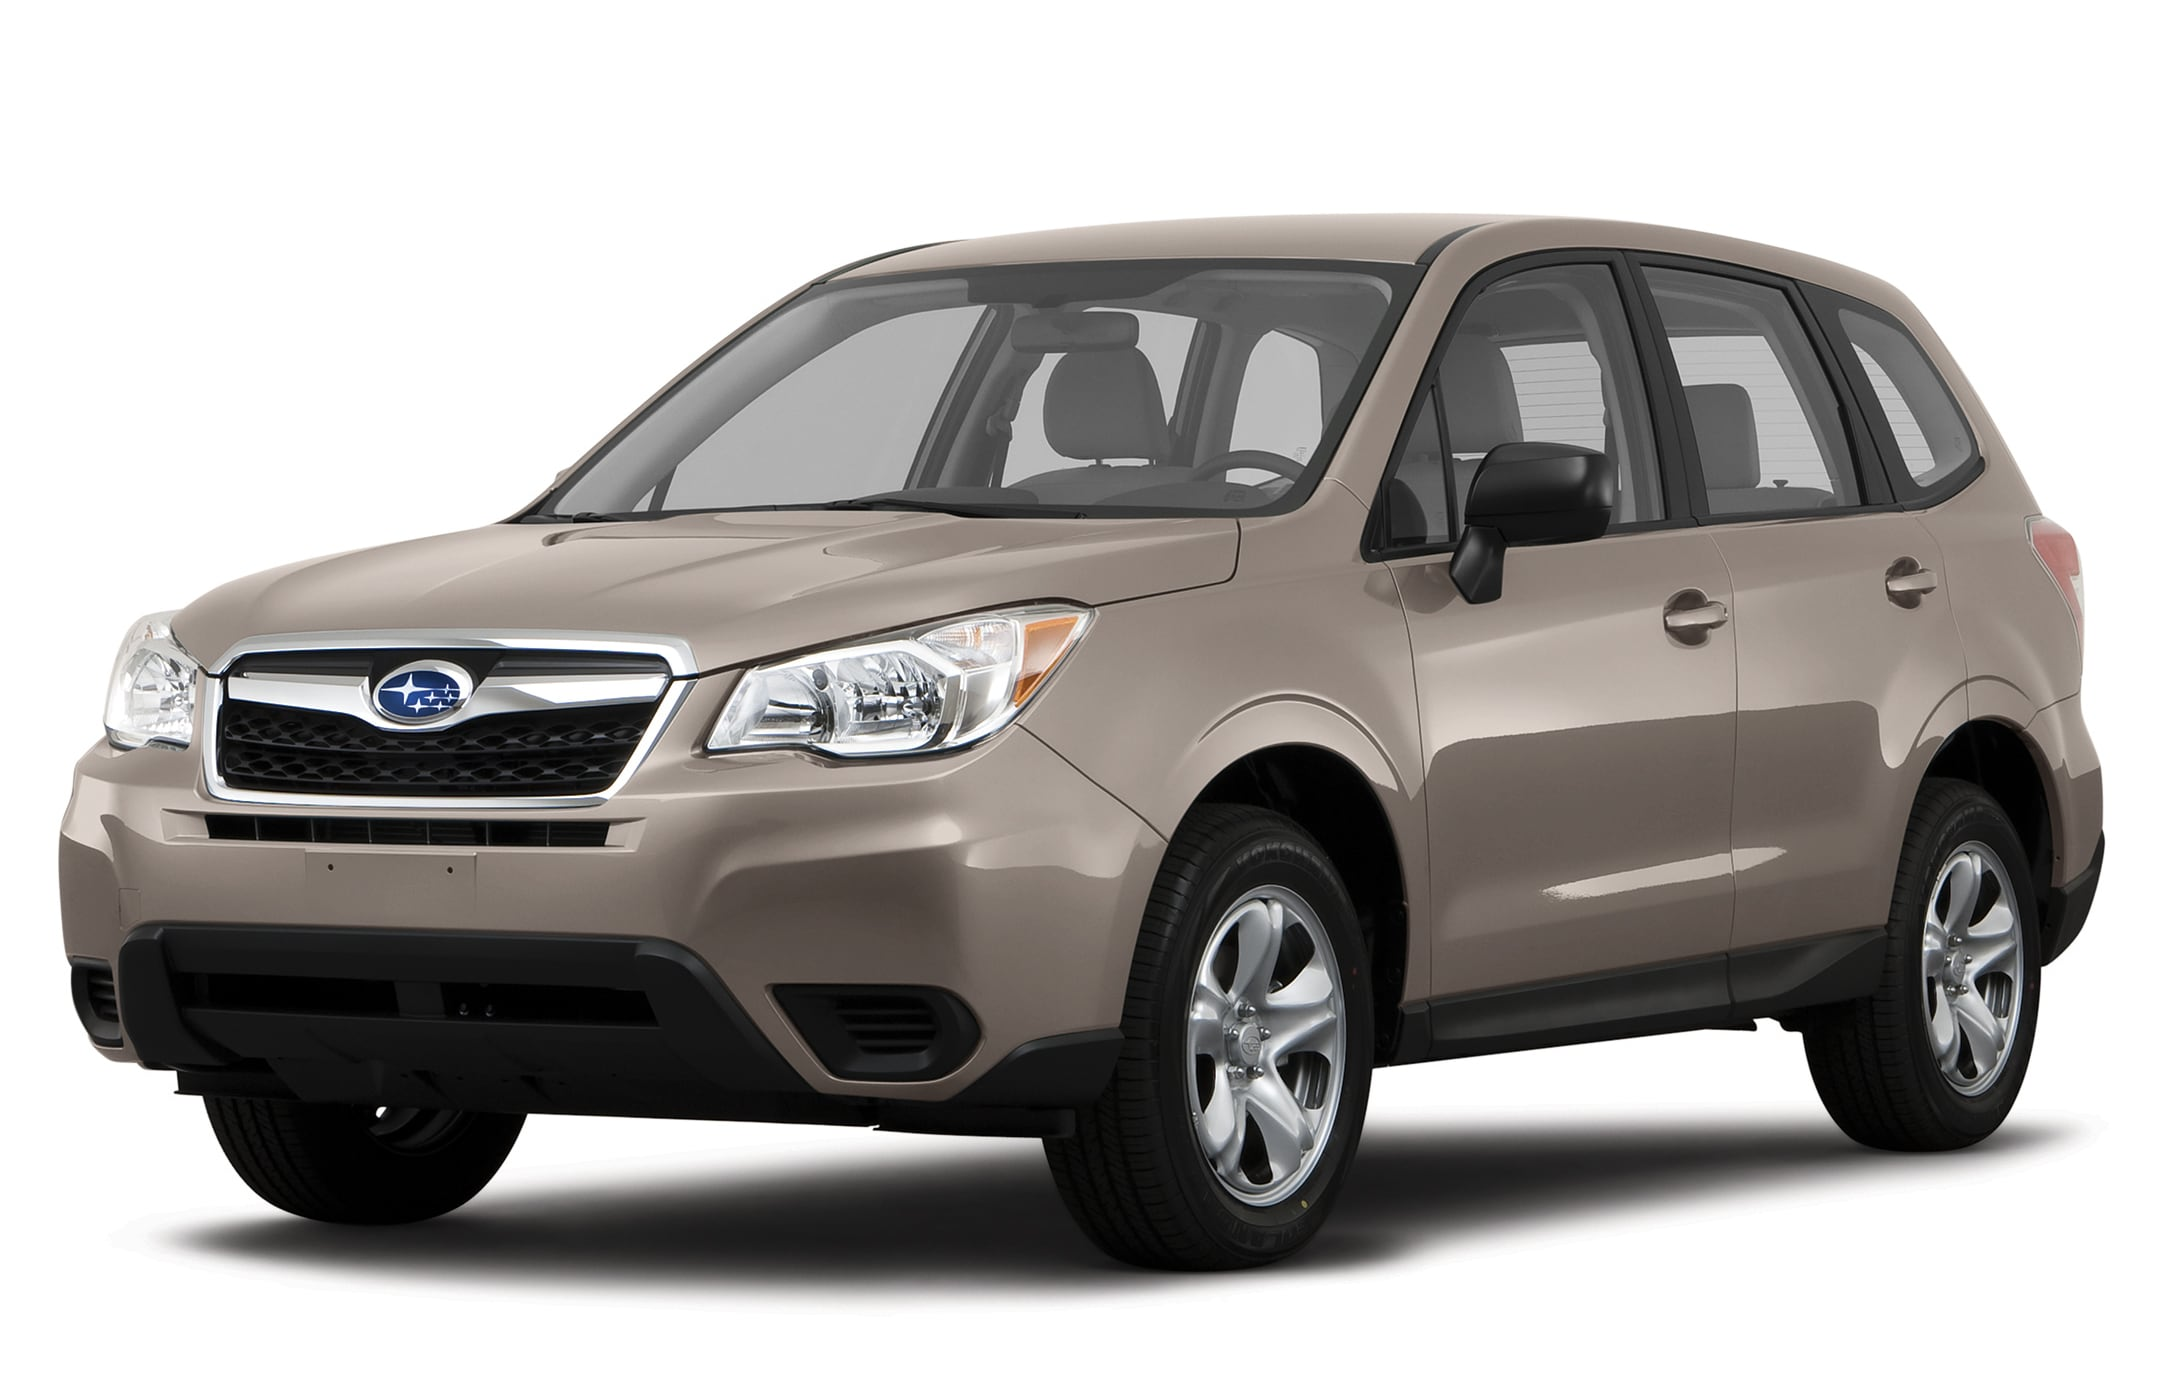 2014 subaru forester trim levels and options twin city subaru near montpelier vermont. Black Bedroom Furniture Sets. Home Design Ideas